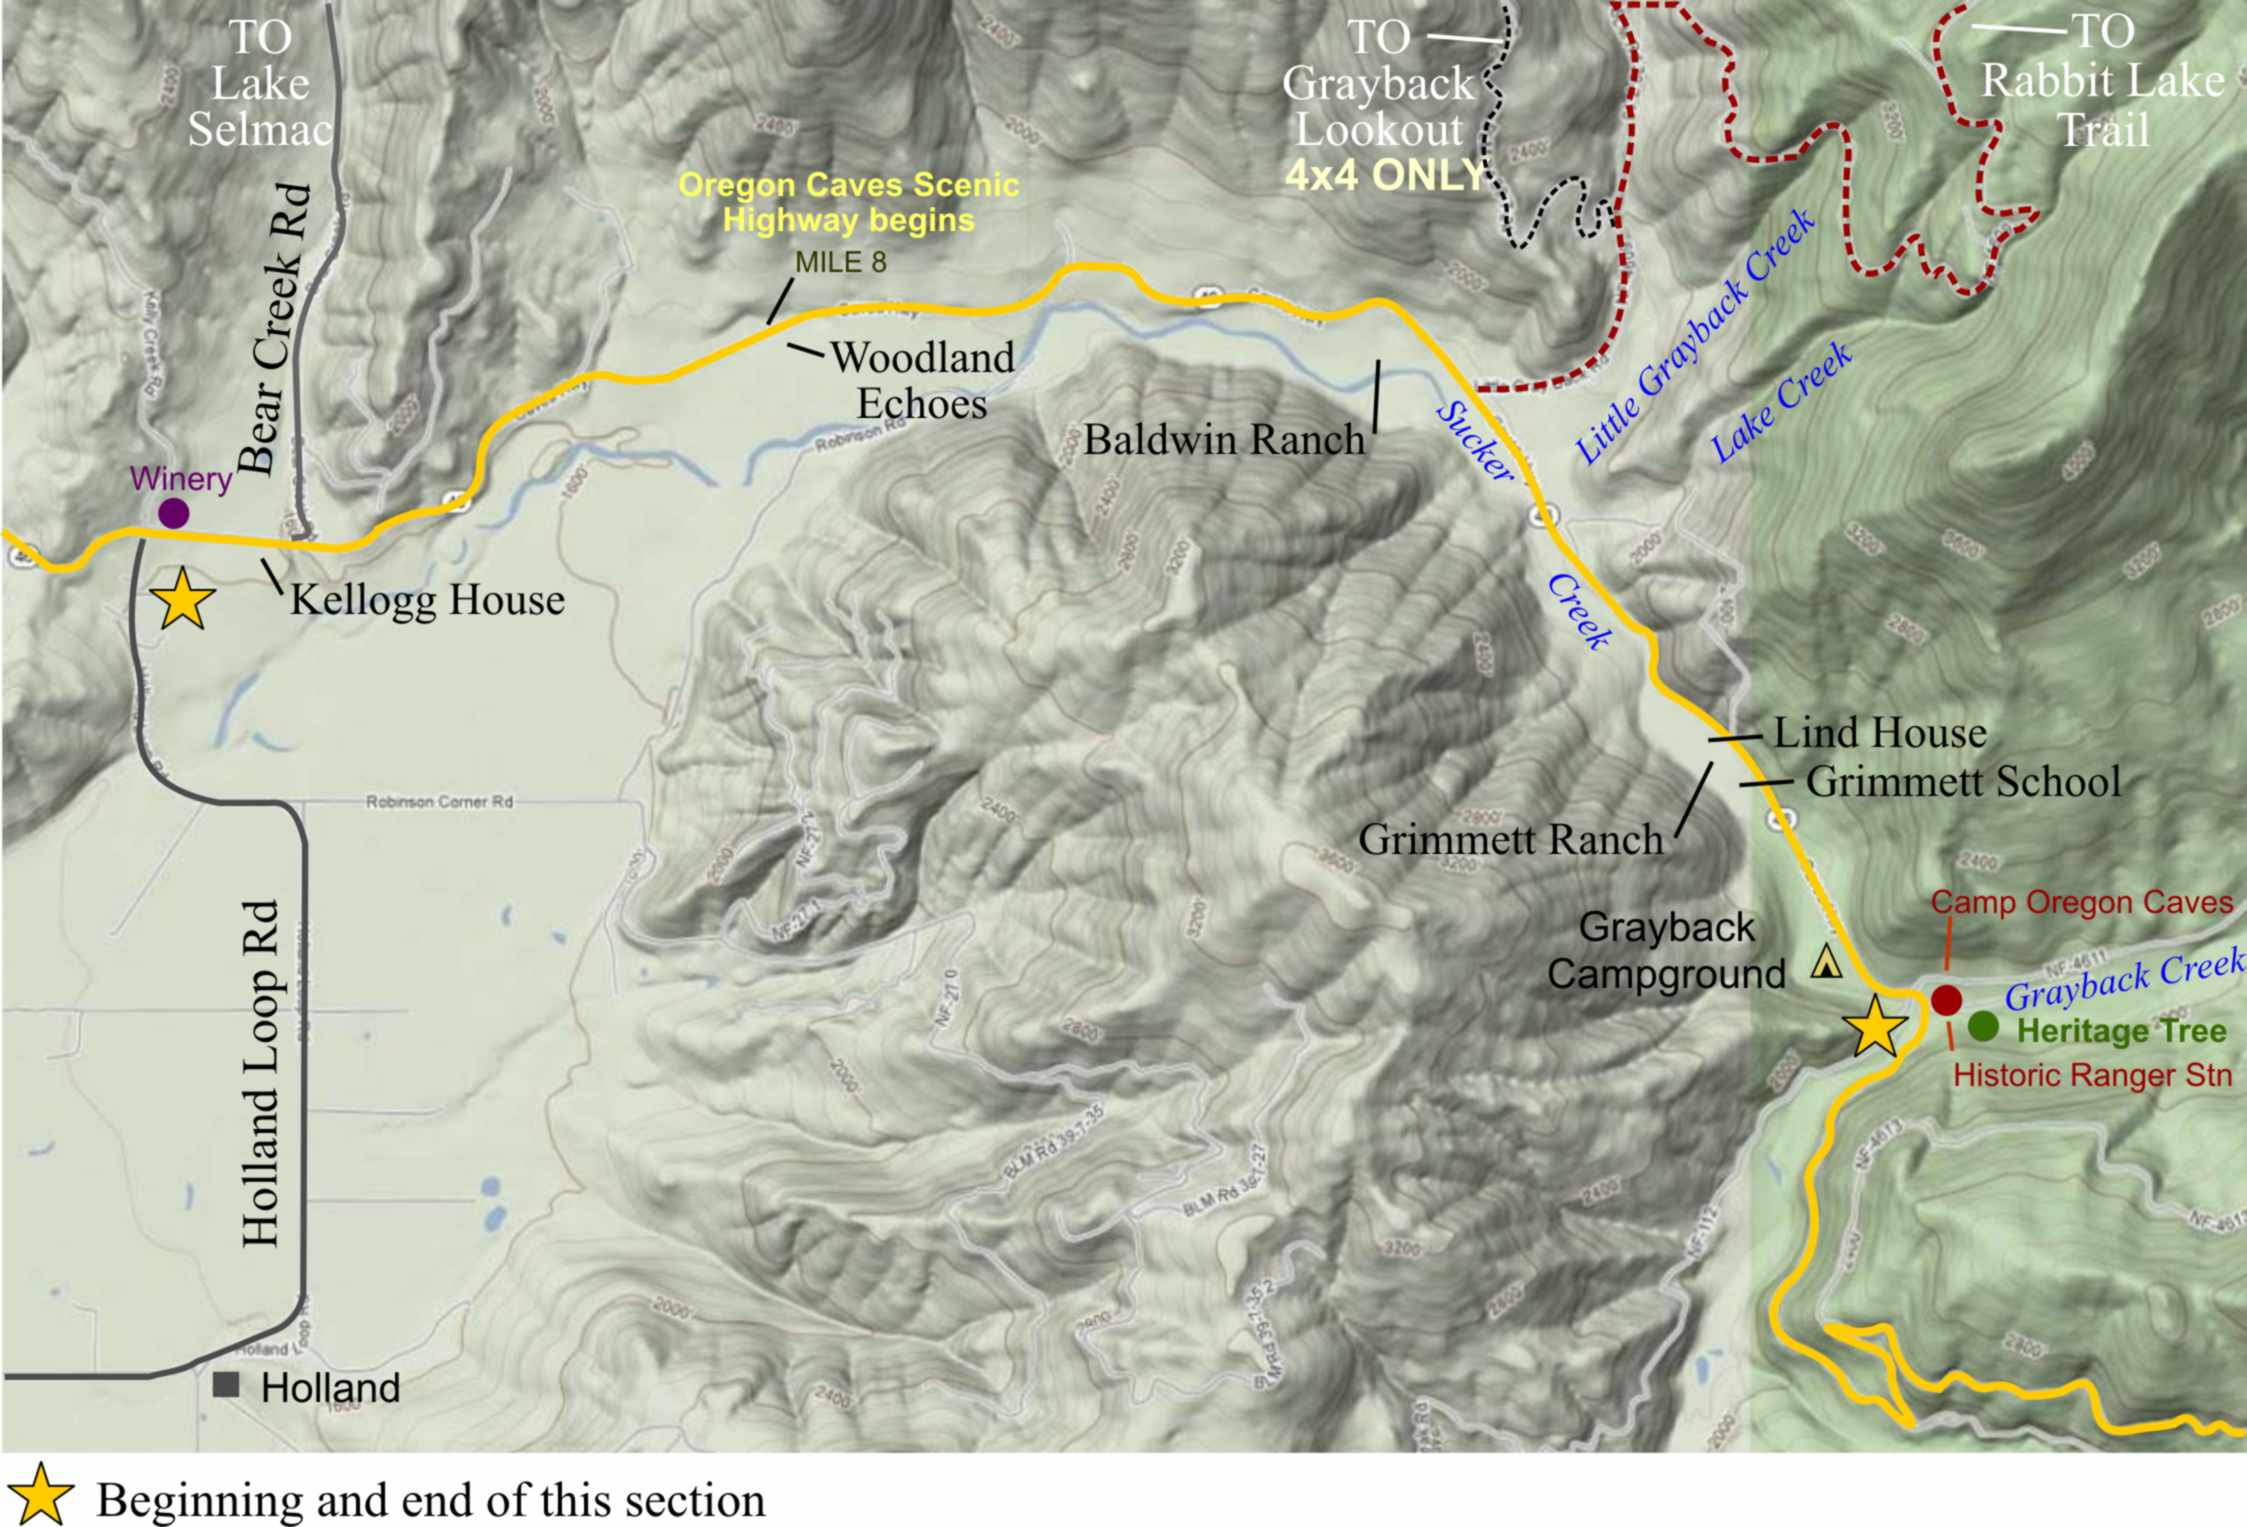 Section 2 – Oregon Caves Road Guide | Highway 199